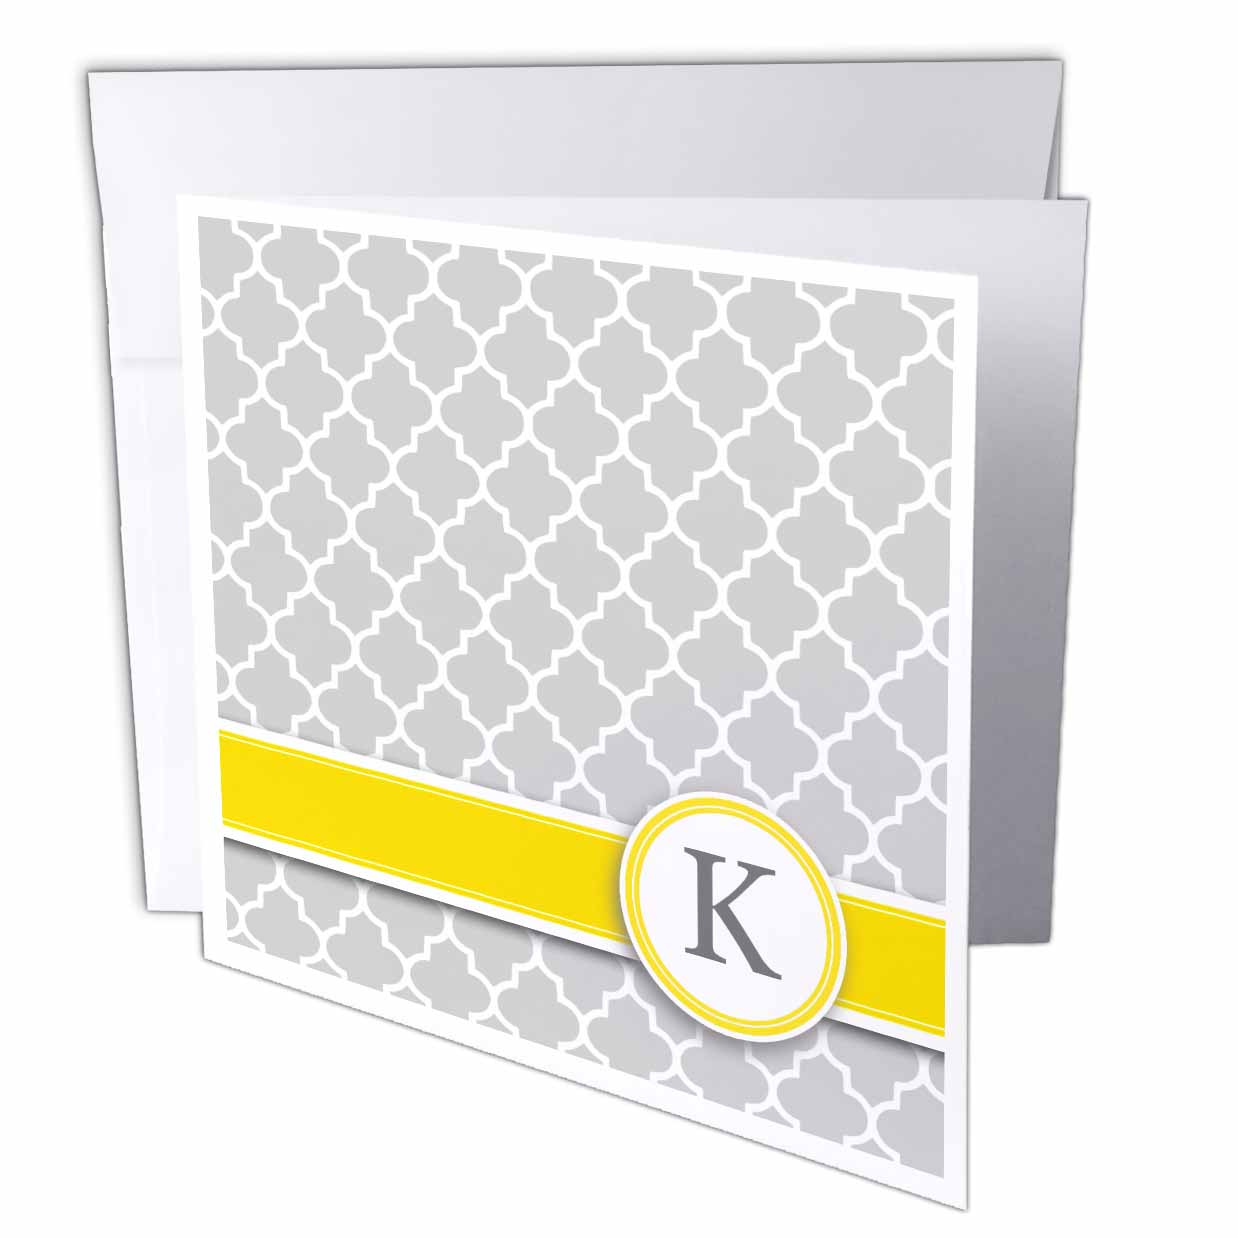 3dRose Your personal name initial letter K - monogrammed grey quatrefoil pattern - personalized yellow gray, Greeting Cards, 6 x 6 inches, set of 12